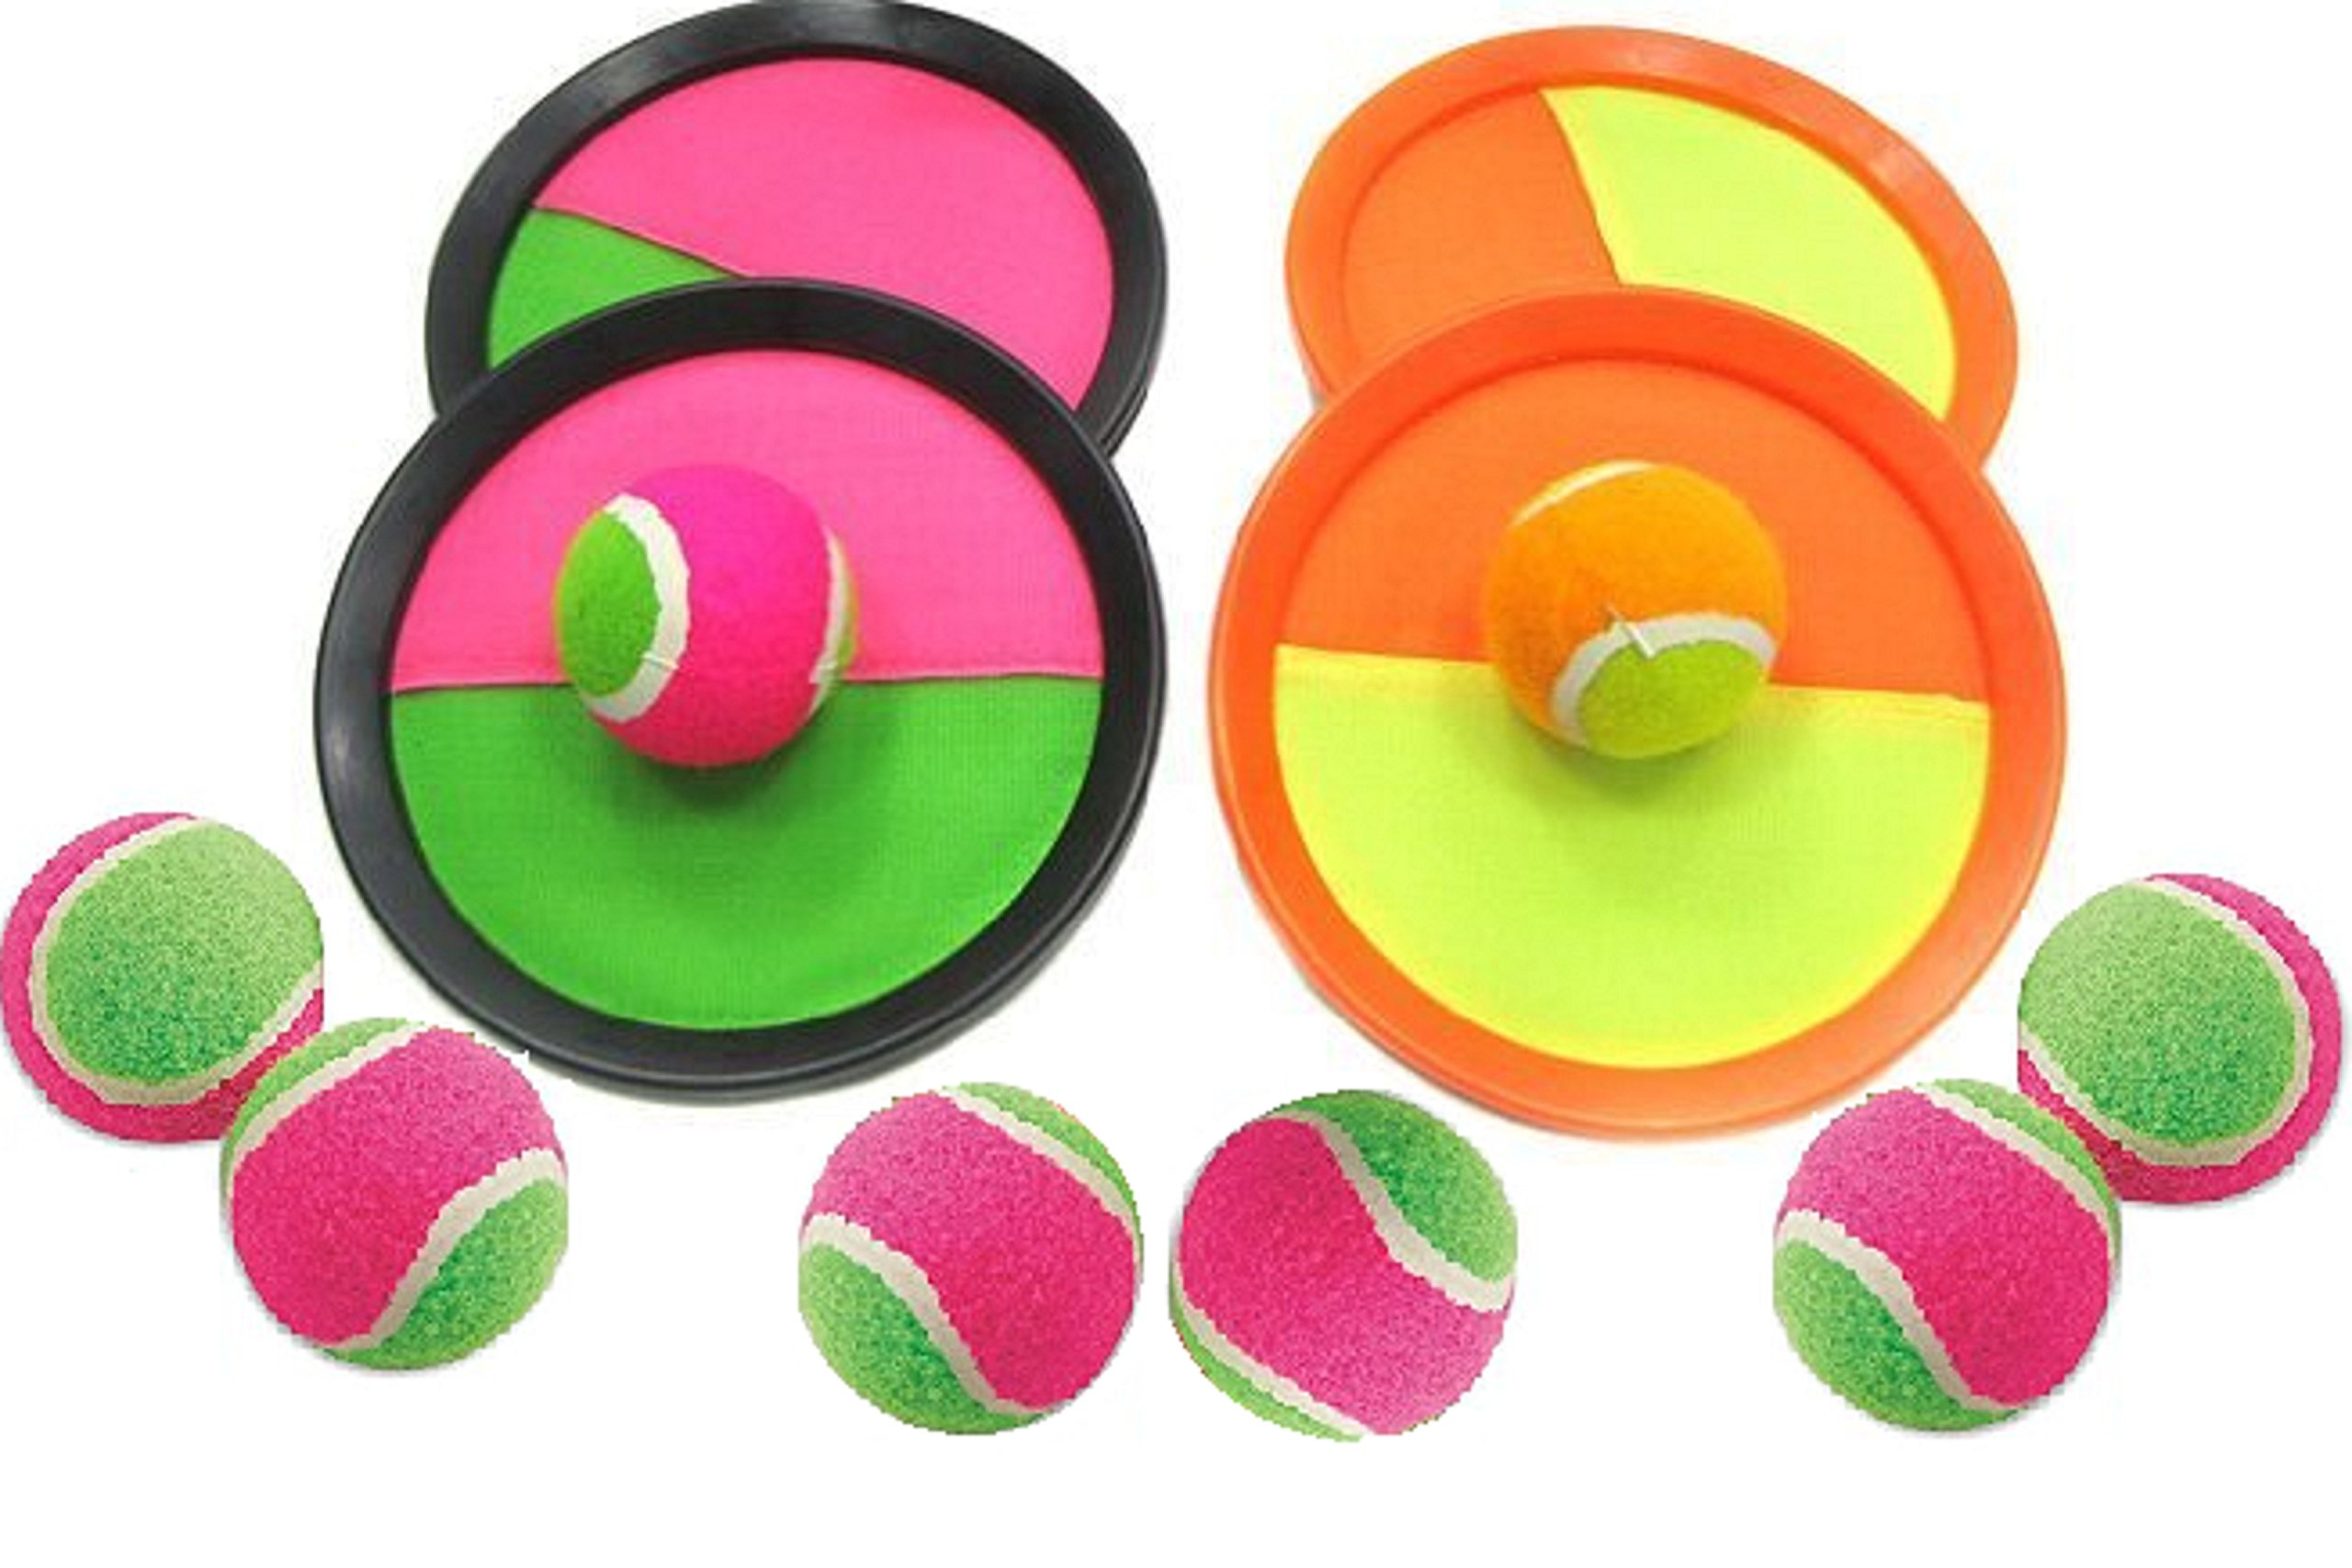 ⚾ Paddle Catch Ball and Toss Game Super Set - 4 Paddles + 8 Balls (Ball Sticks to Paddle)